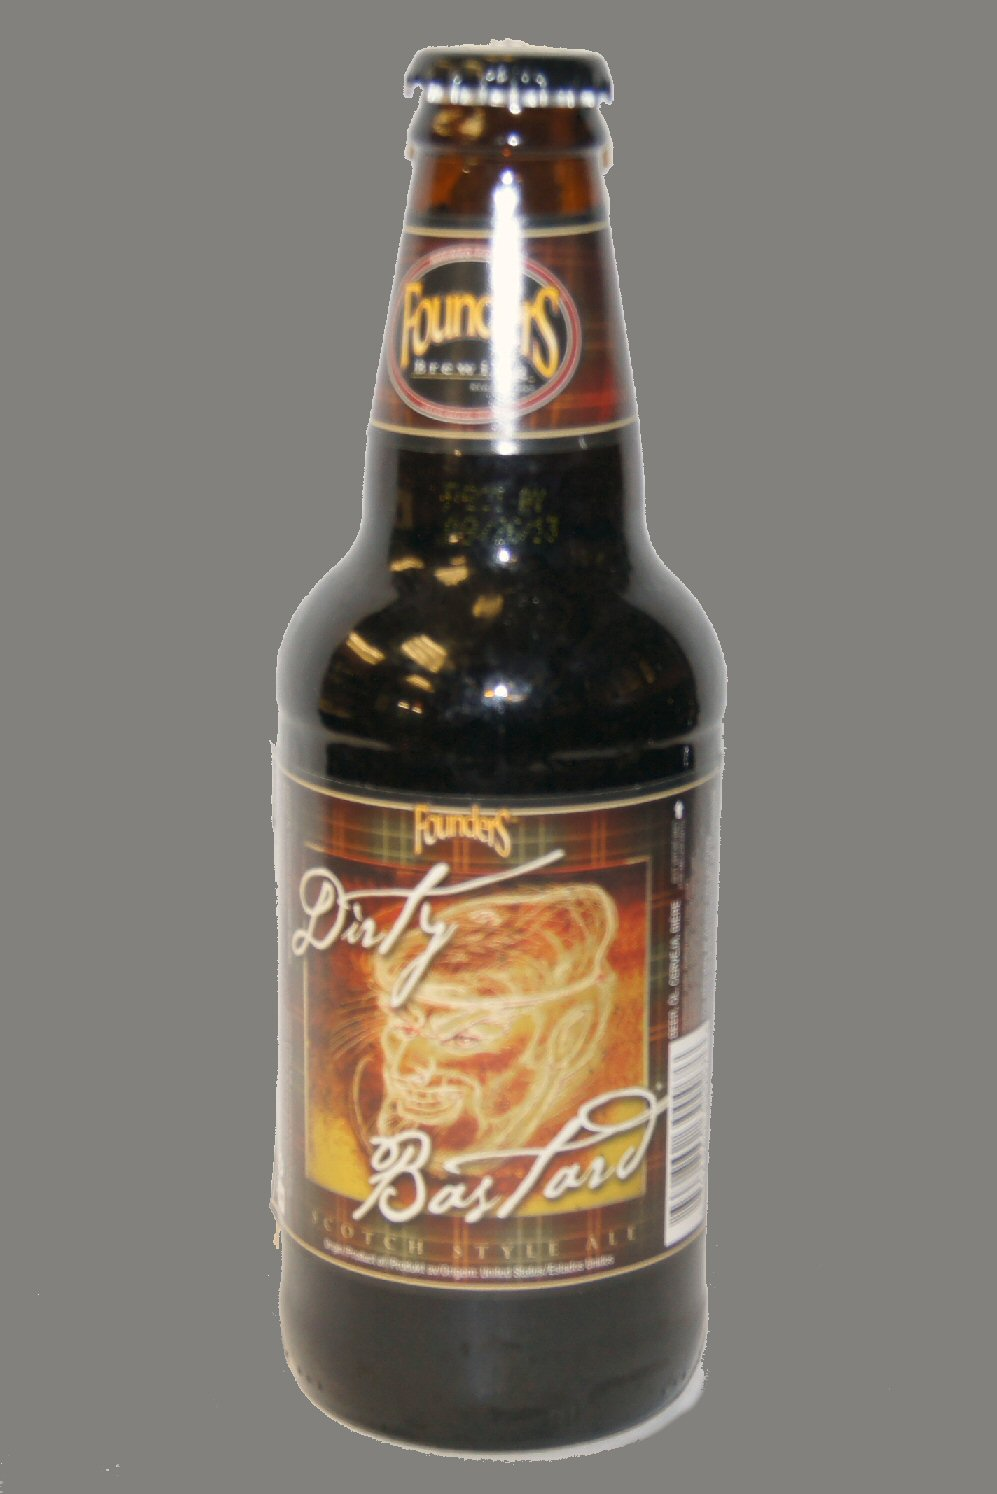 FOUNDERS-Dirty Bastard.jpg